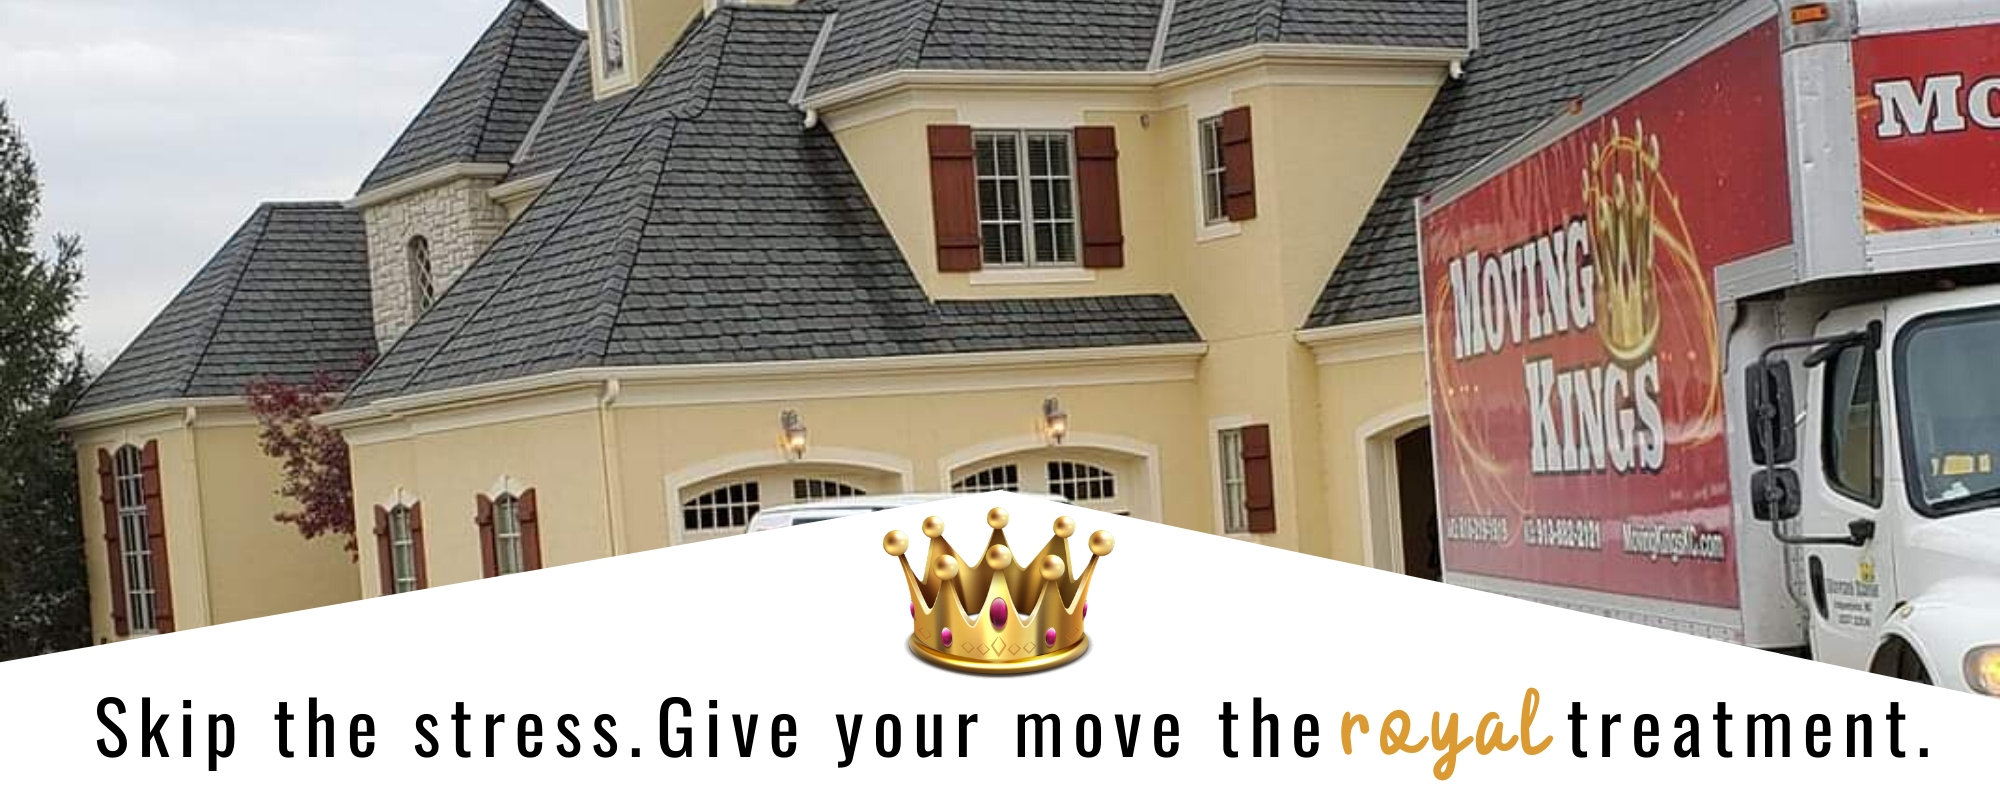 Moving Kings treats you like royalty.